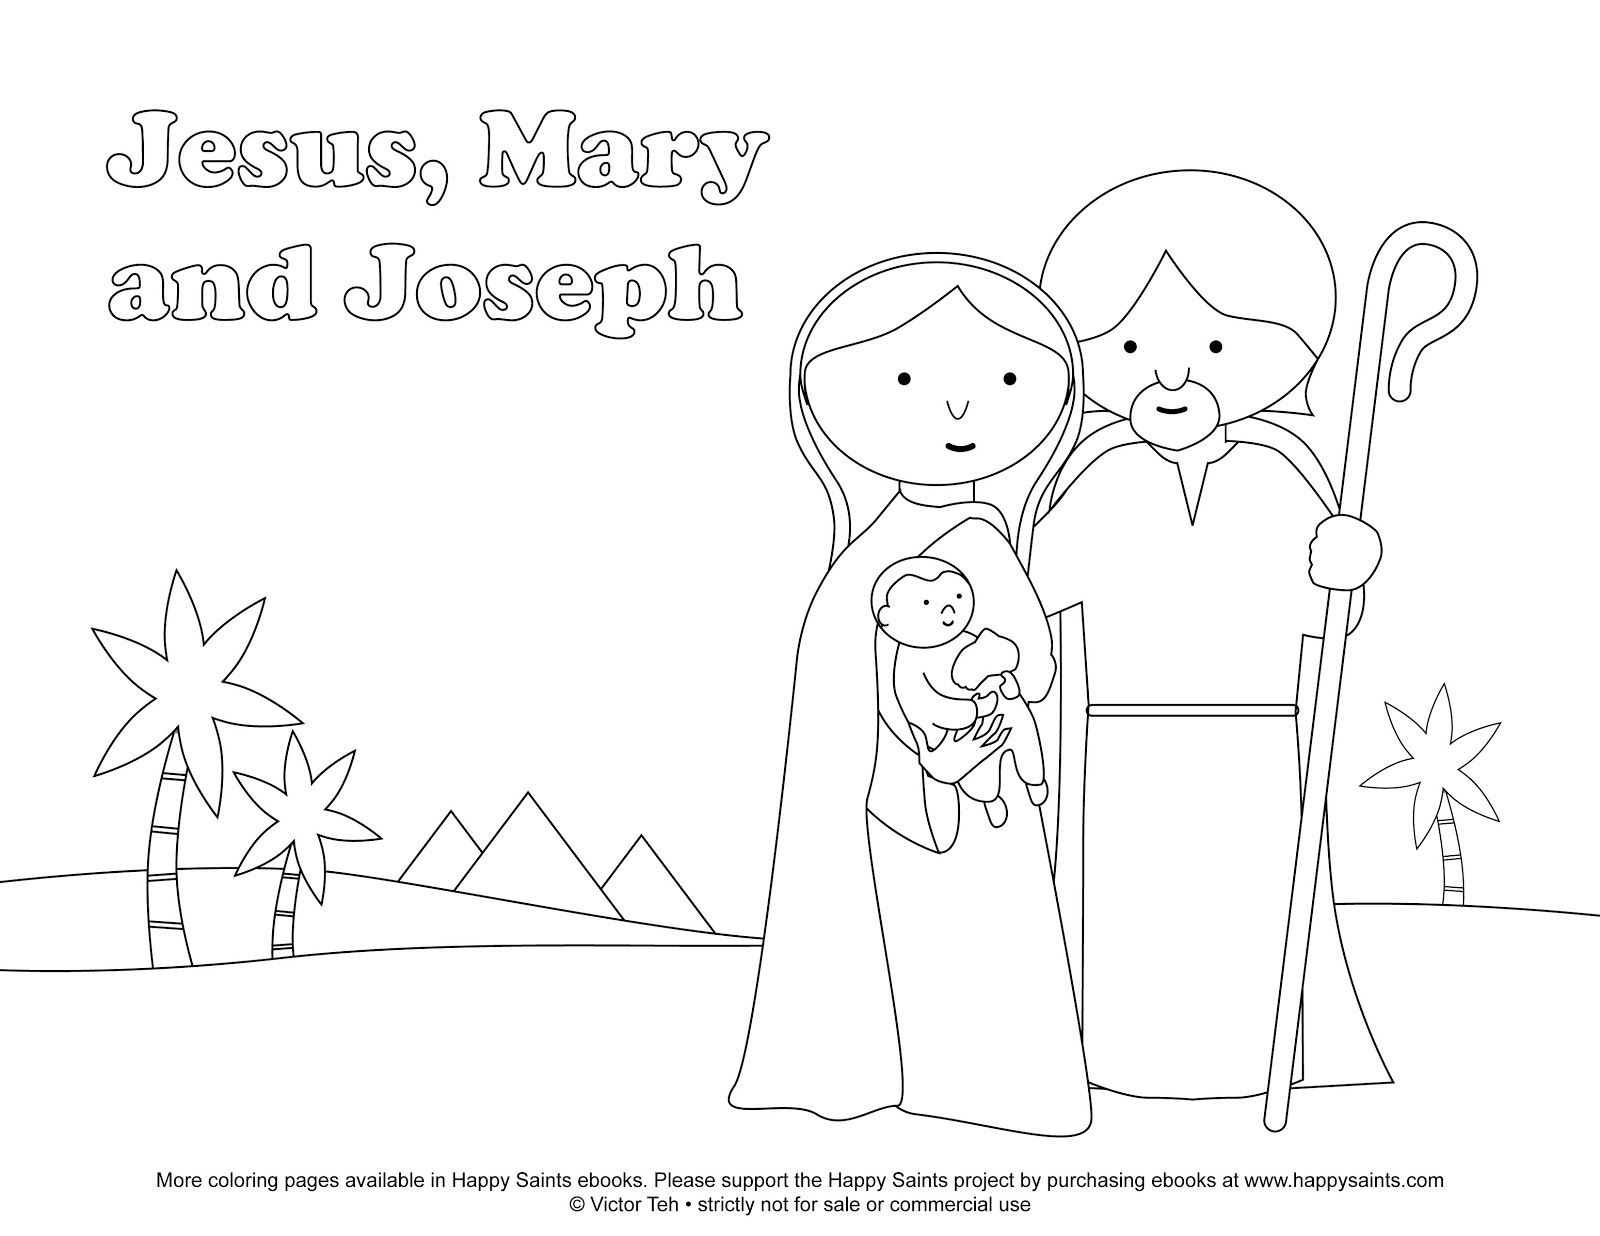 Happy Saints Free Coloring Page Of The Holy Family